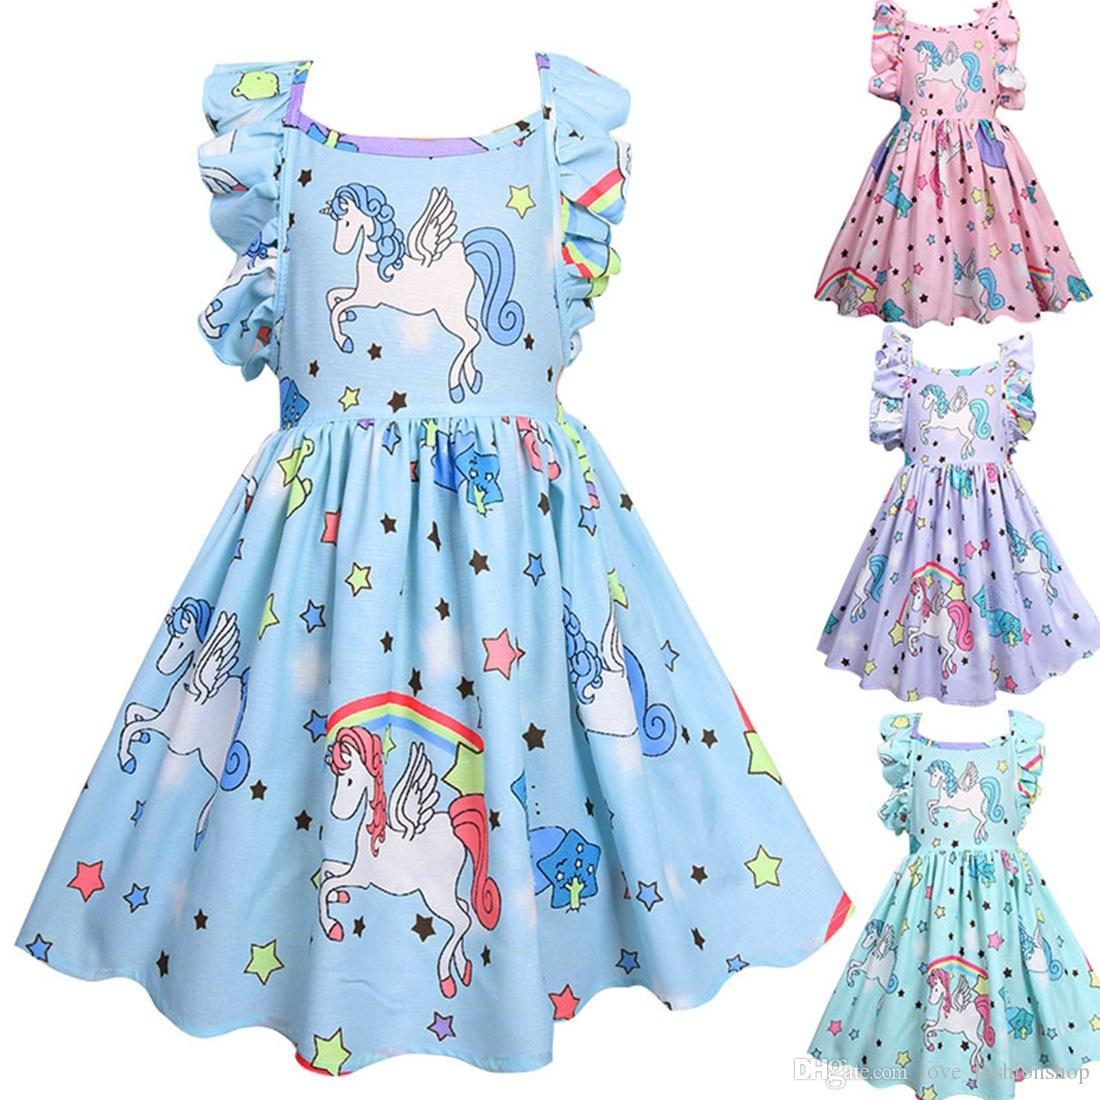 2020 ins baby girls cartoon unicorn printed dress kids